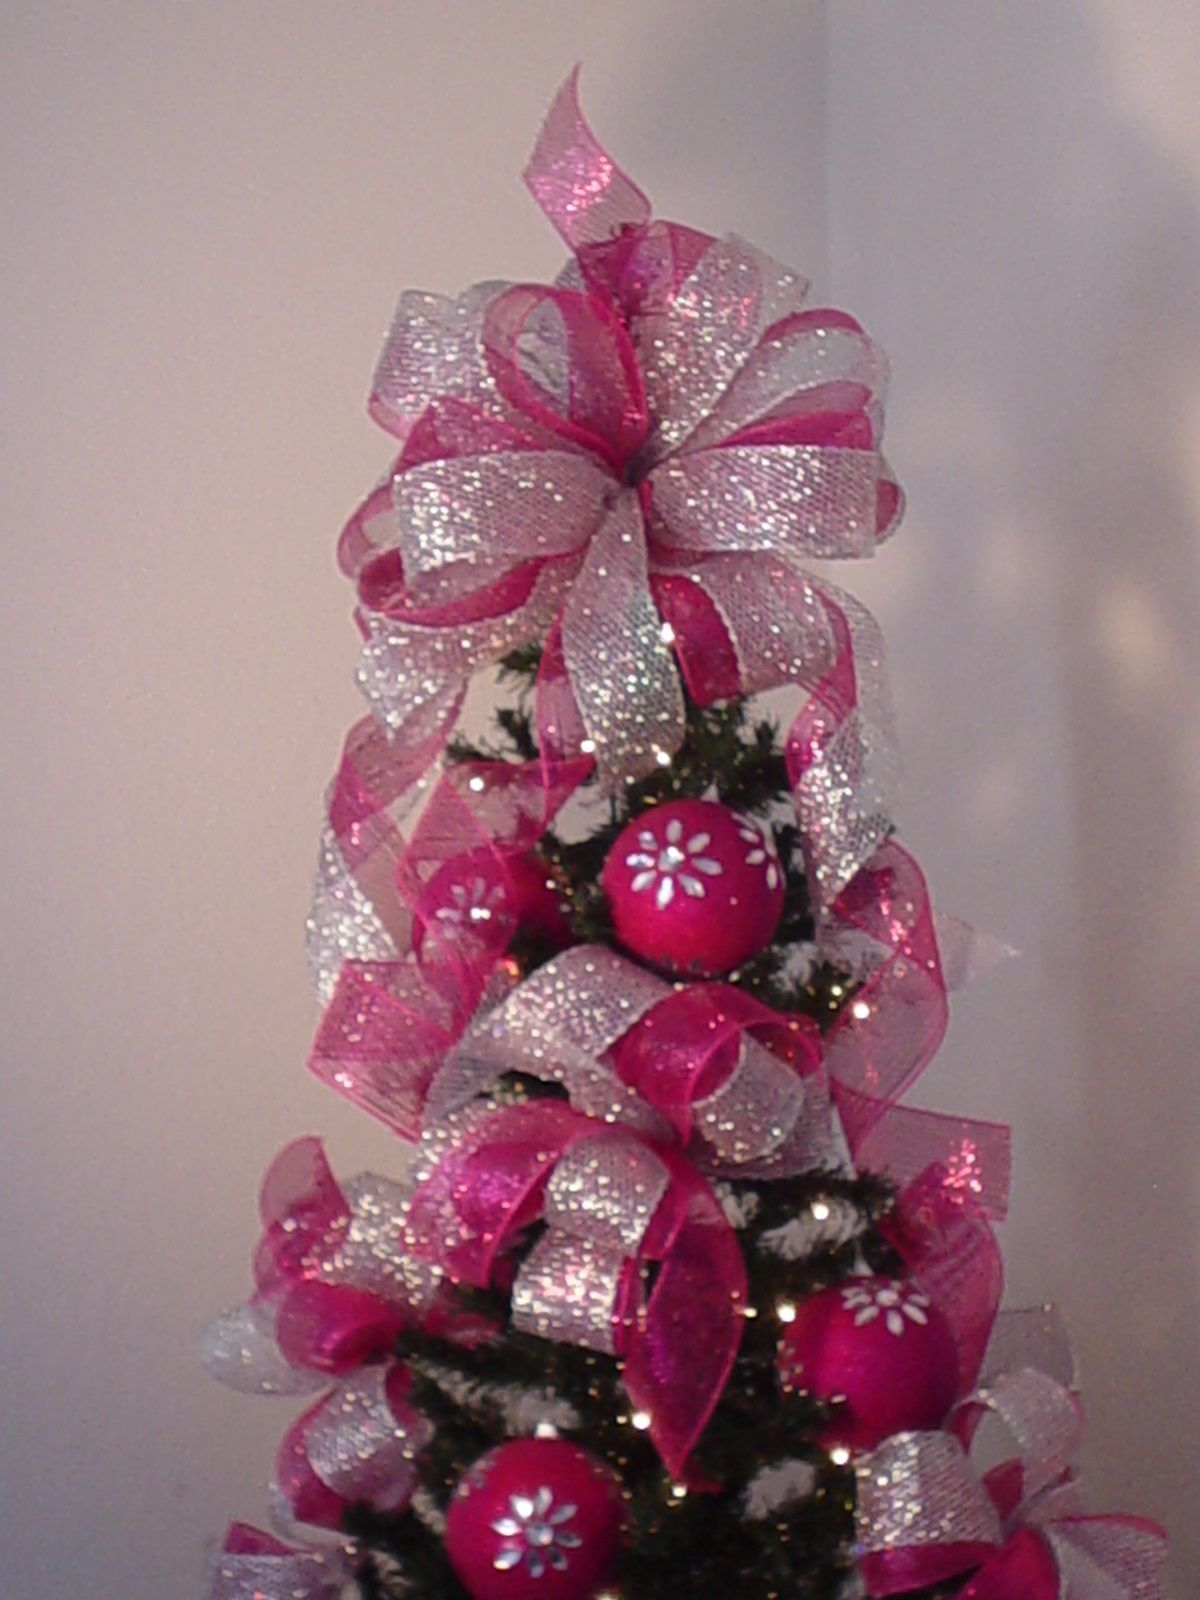 Coordinate Decorations Throughout Your House With